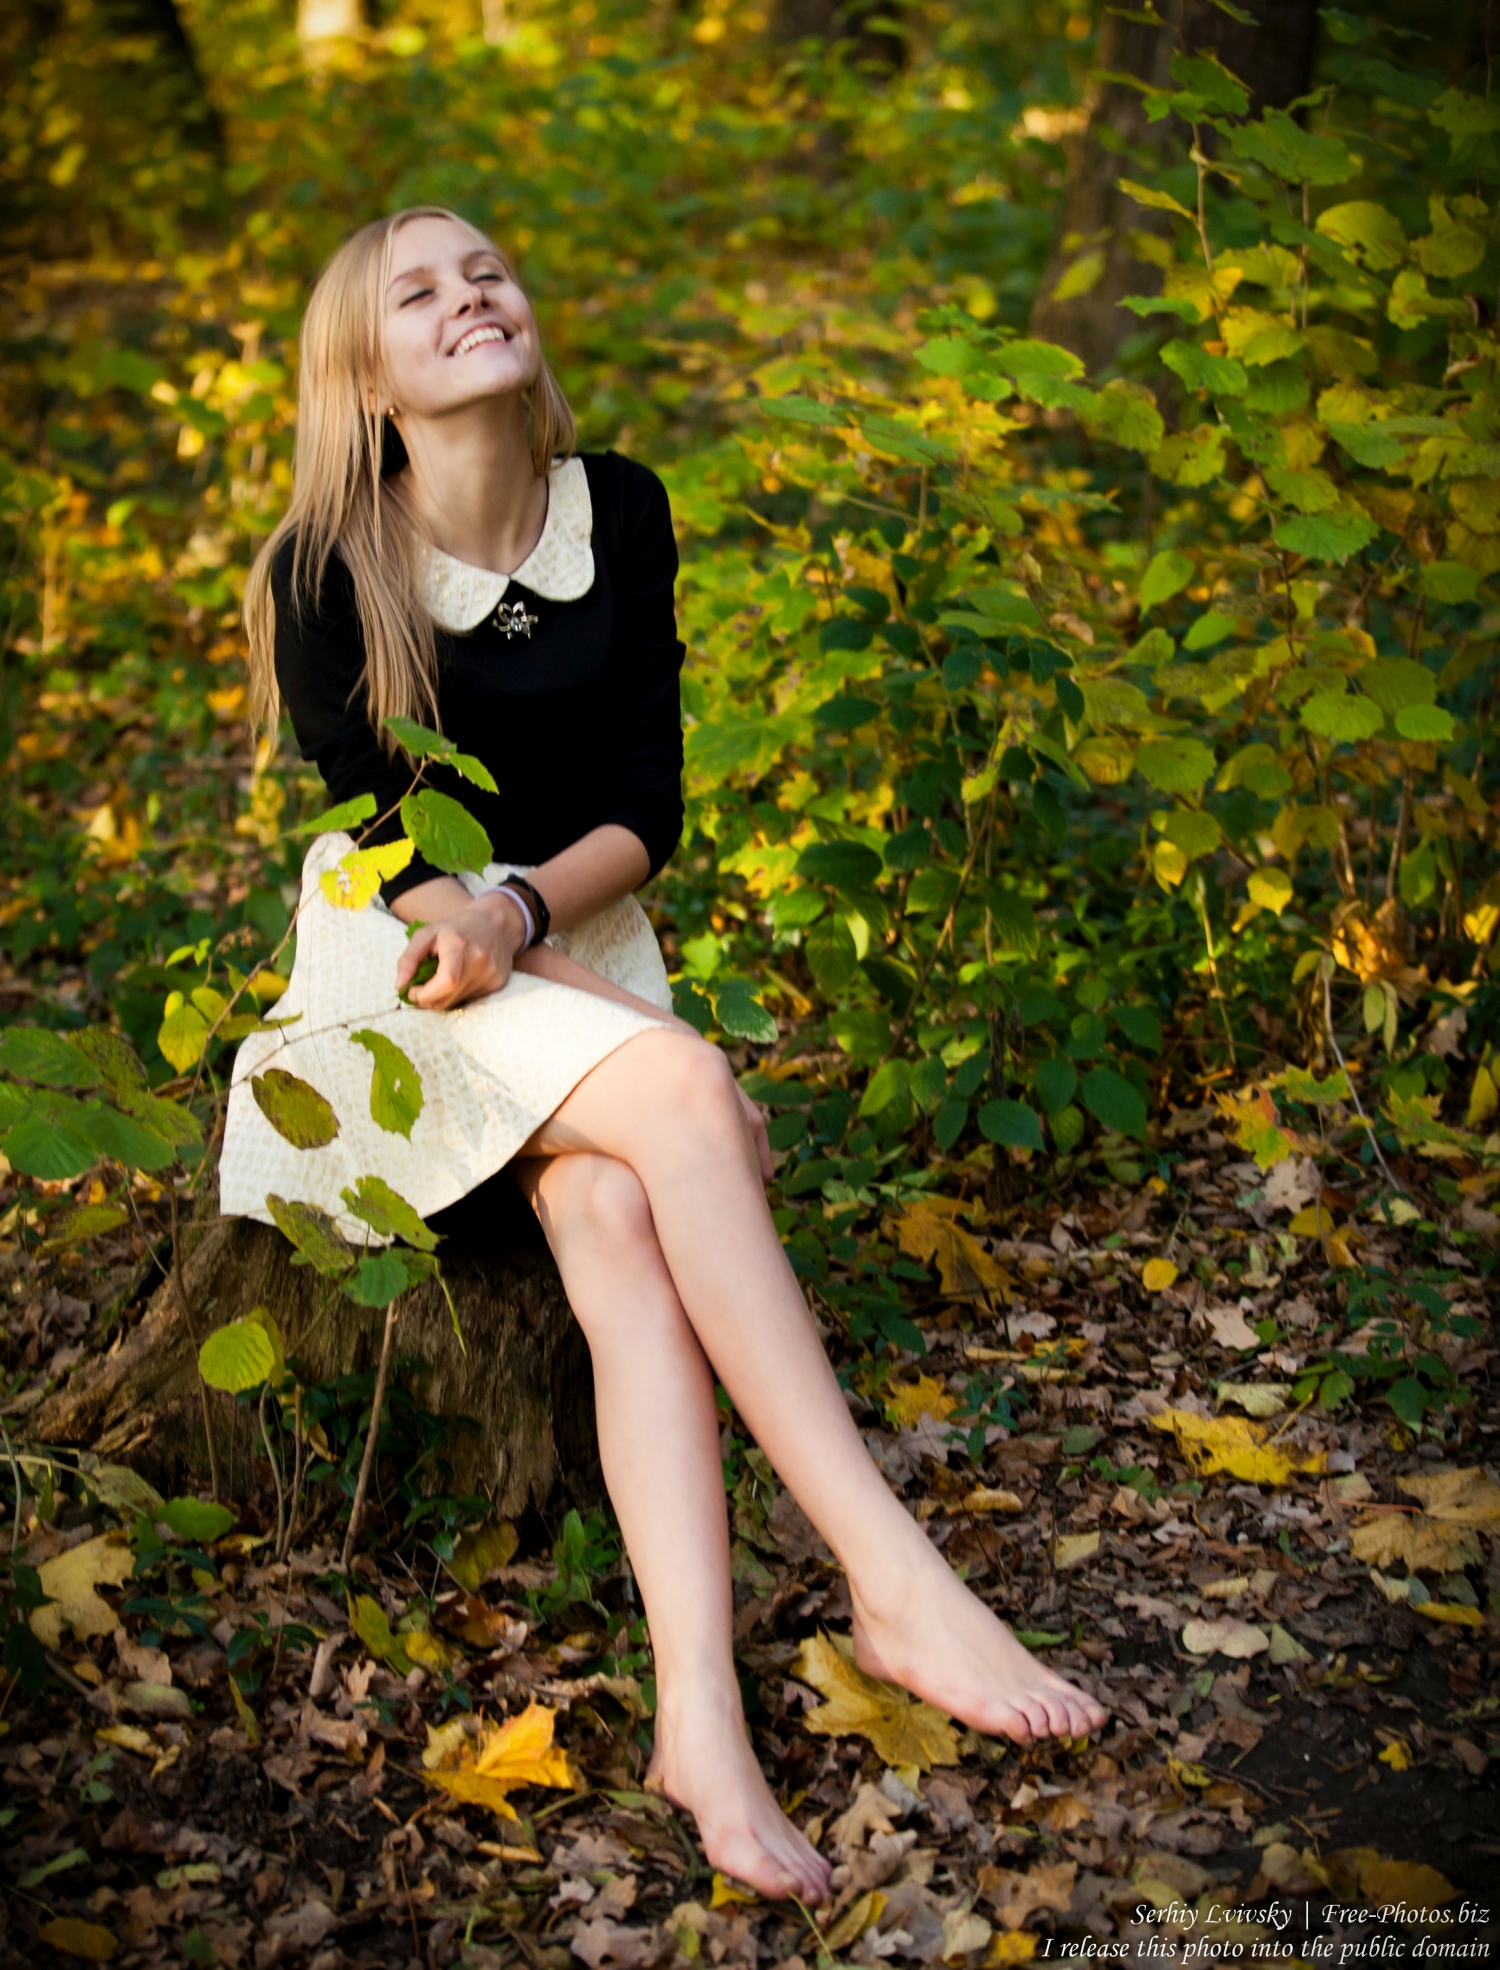 a_15-year-old_blond_girl_photographed_by_serhiy_lvivsky_11